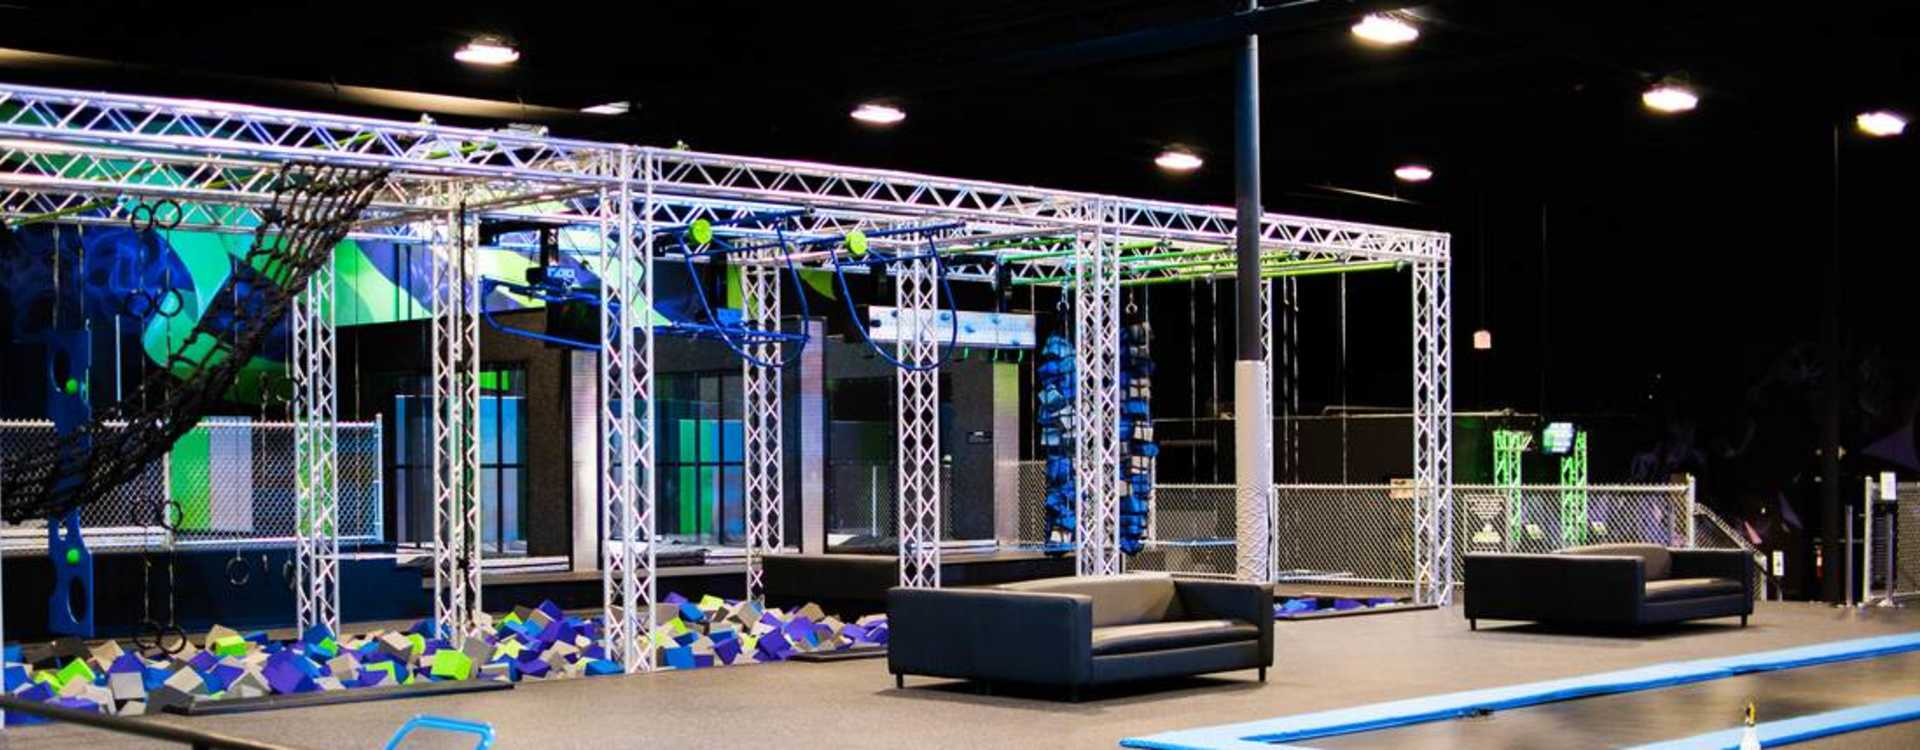 Trampolines & Obstacle Course